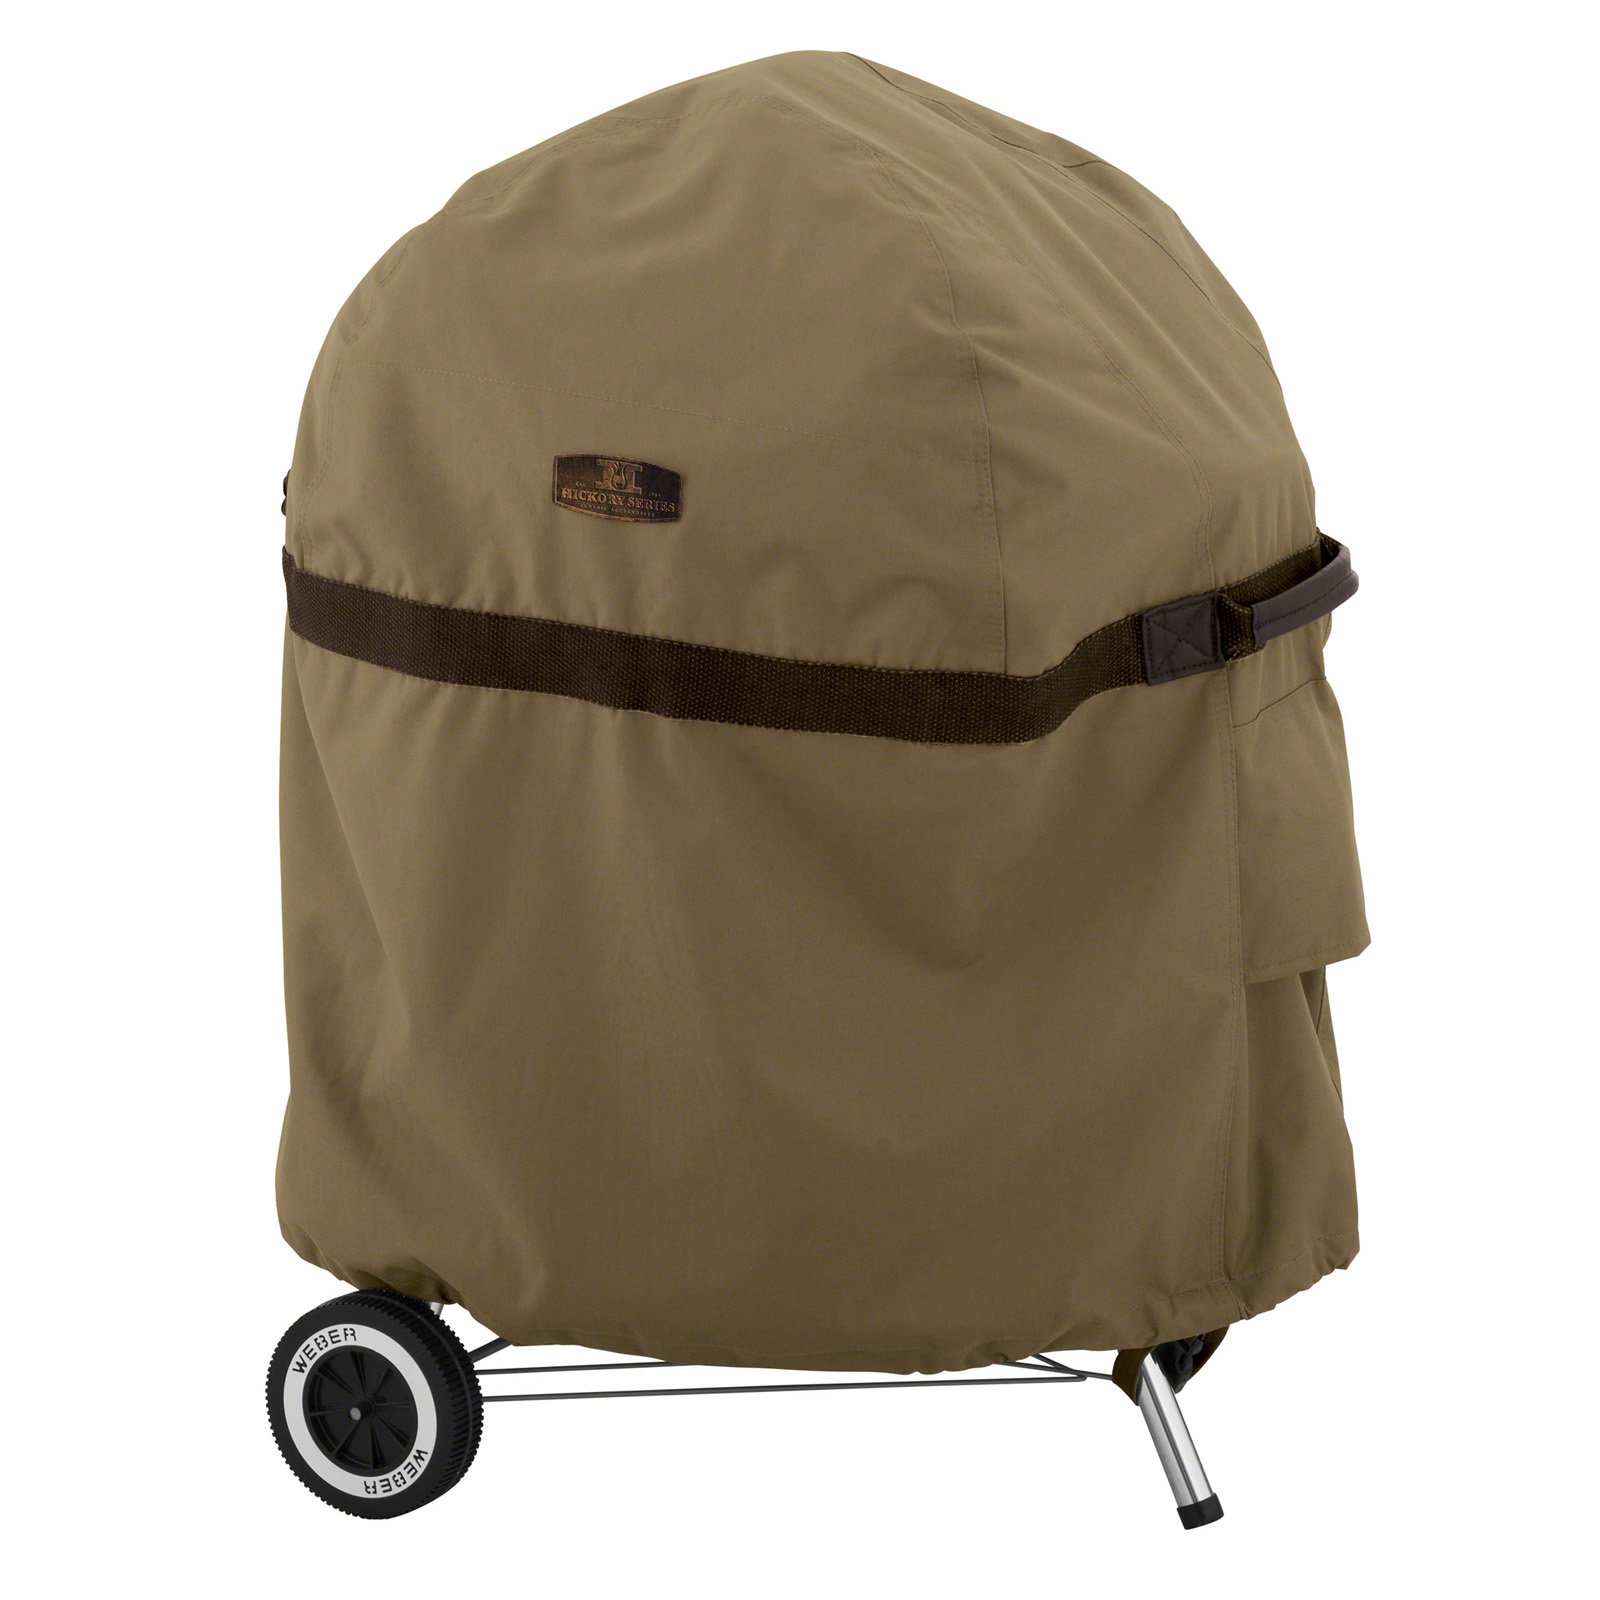 Classic Accessories Hickory Heavy-Duty Patio Kettle BBQ Grill Cover - Rugged BBQ Cover with Advanced Weather Protection (55-202-012401-EC)